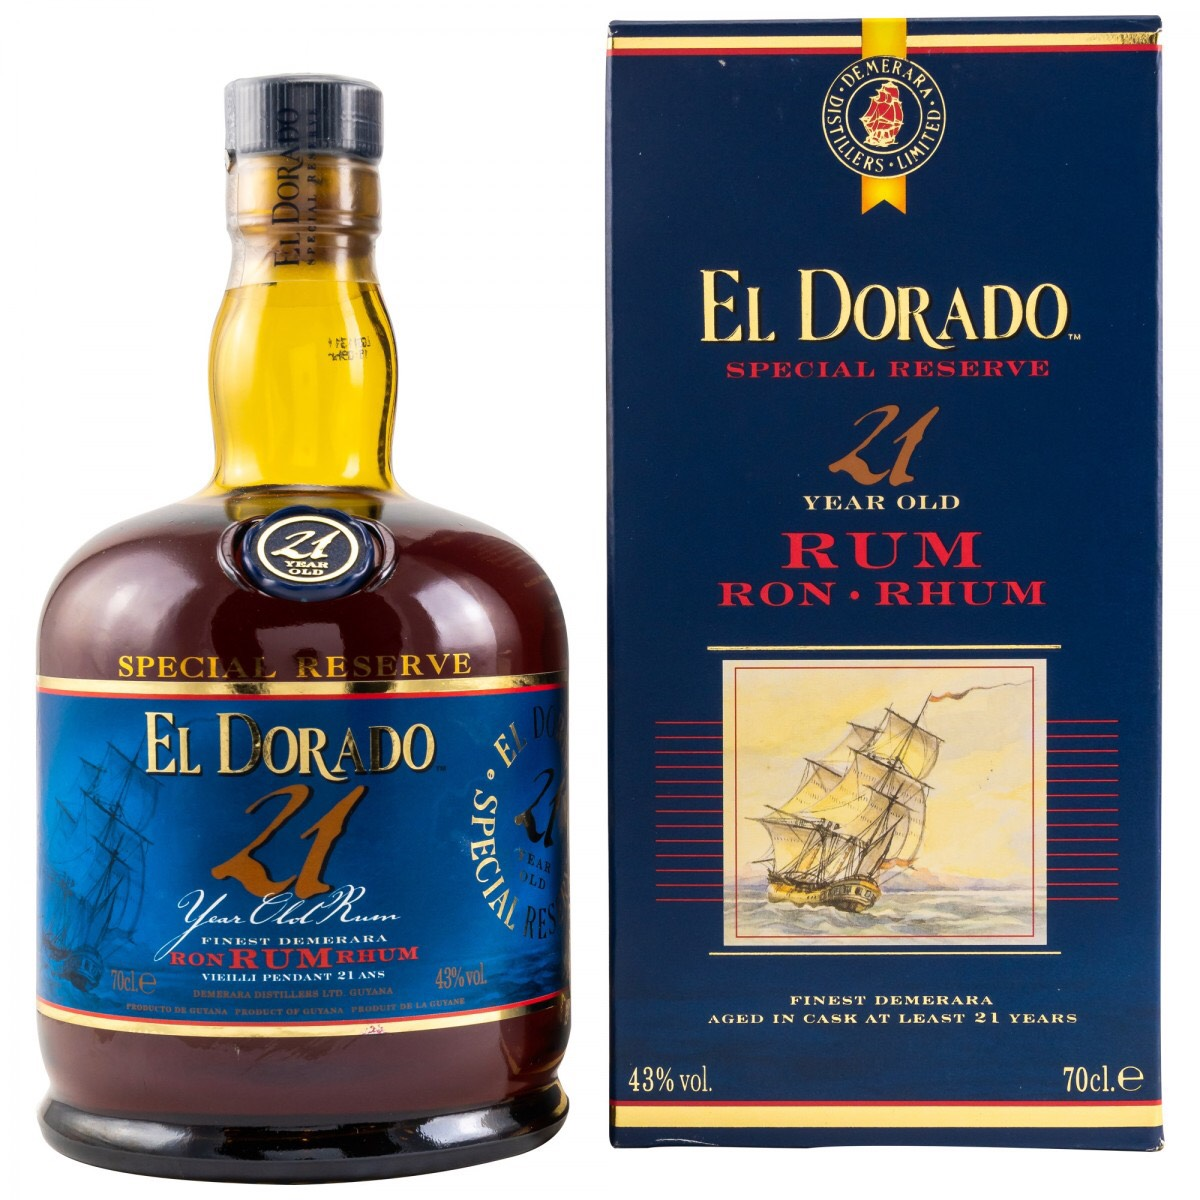 Bottle image of El Dorado 21